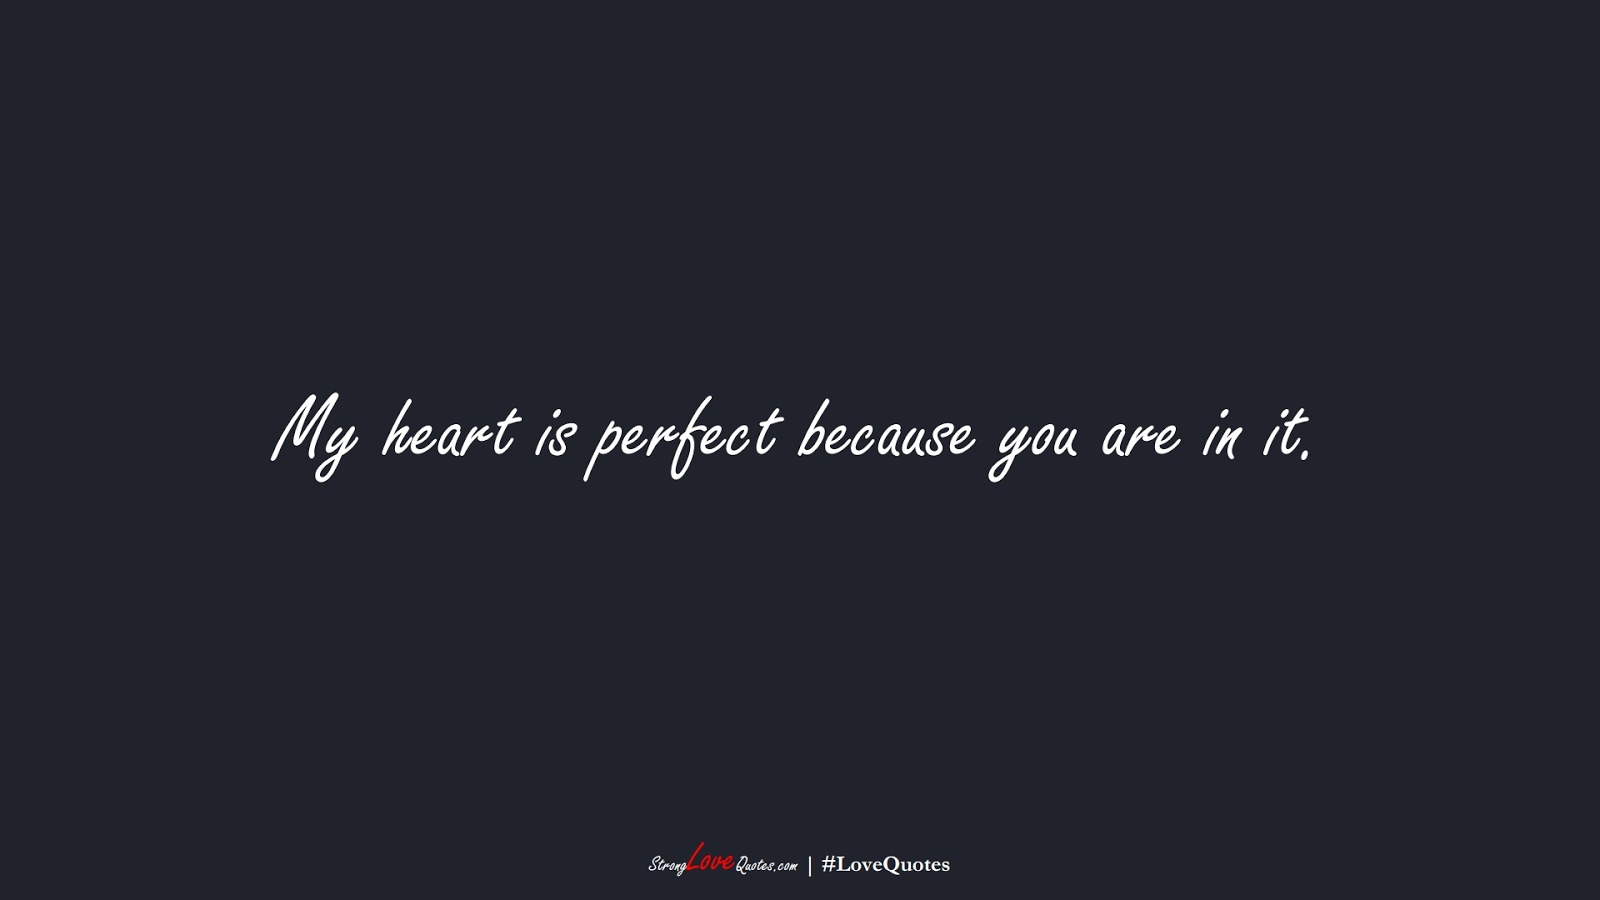 My heart is perfect because you are in it.FALSE